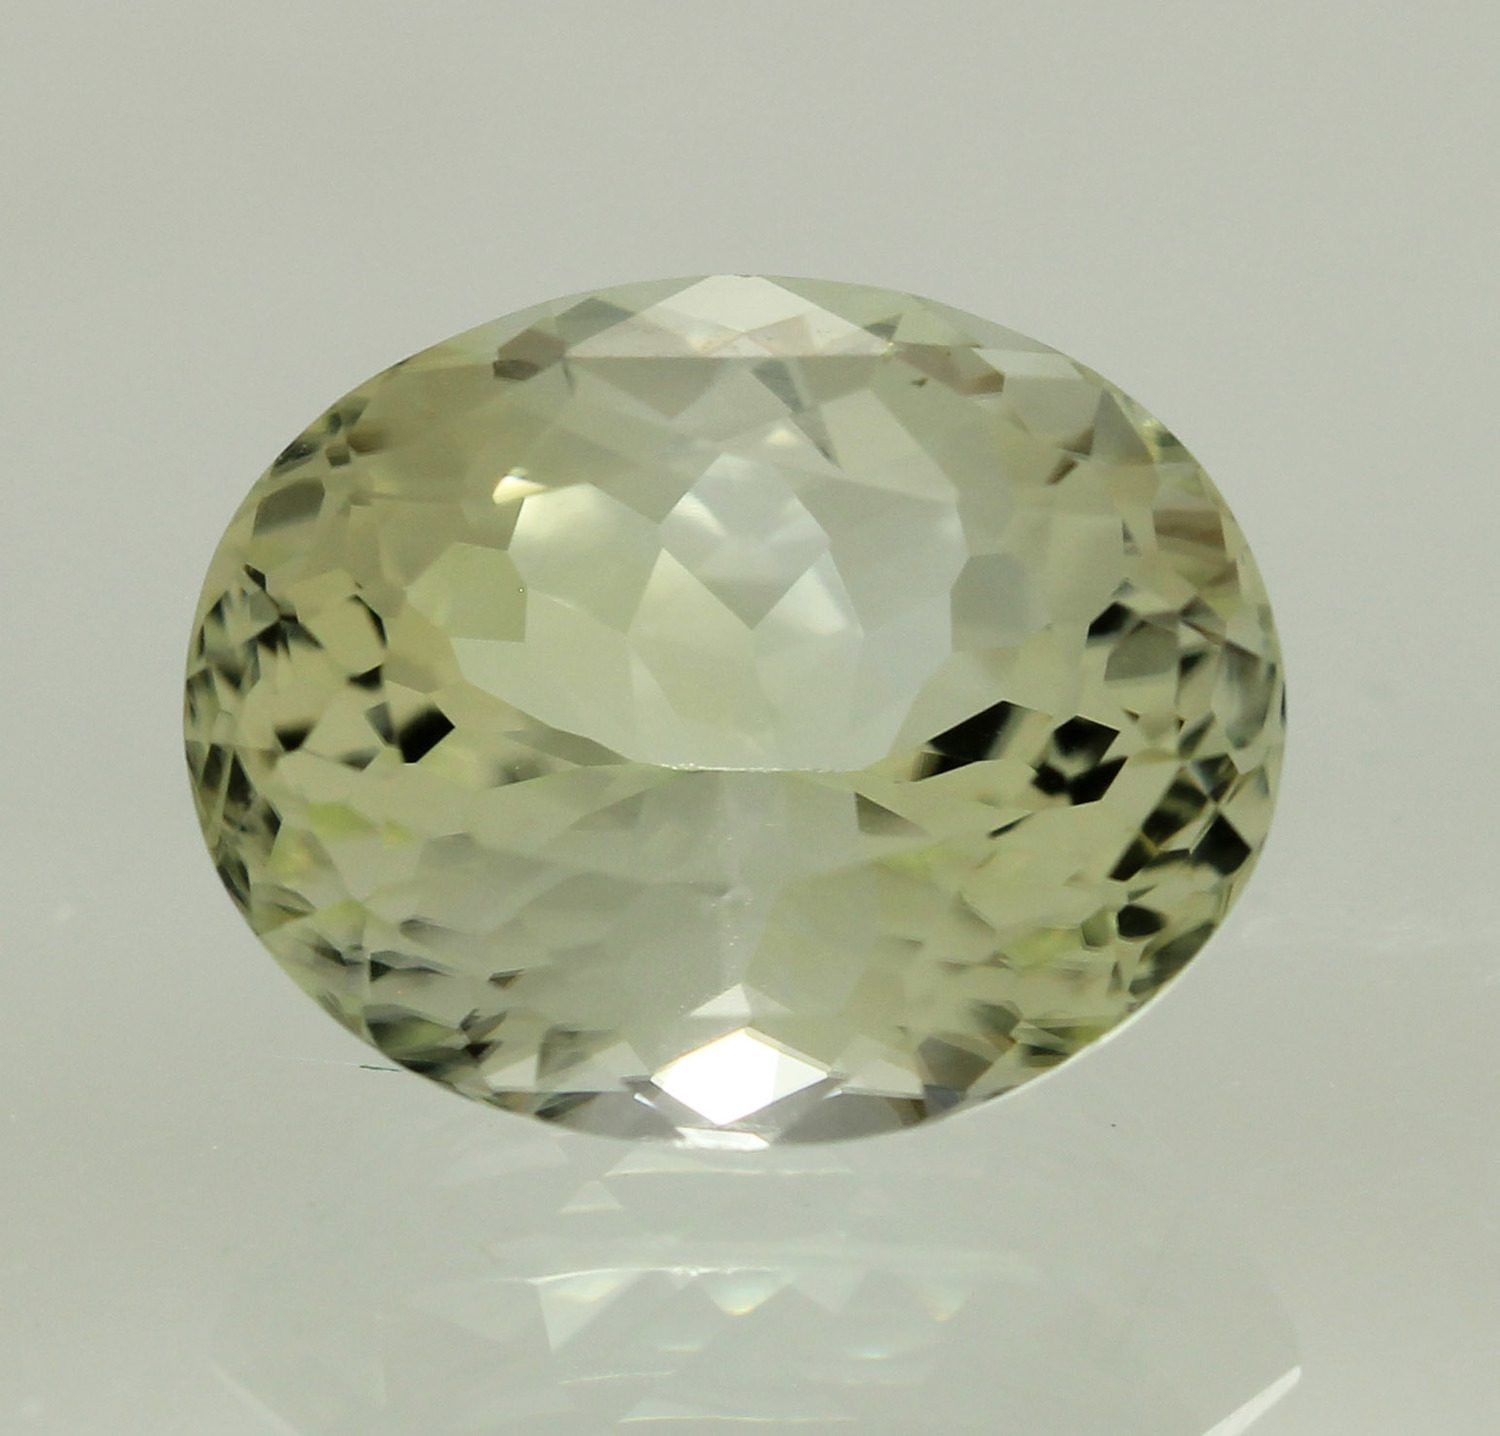 Datolite Value Price And Jewelry Information